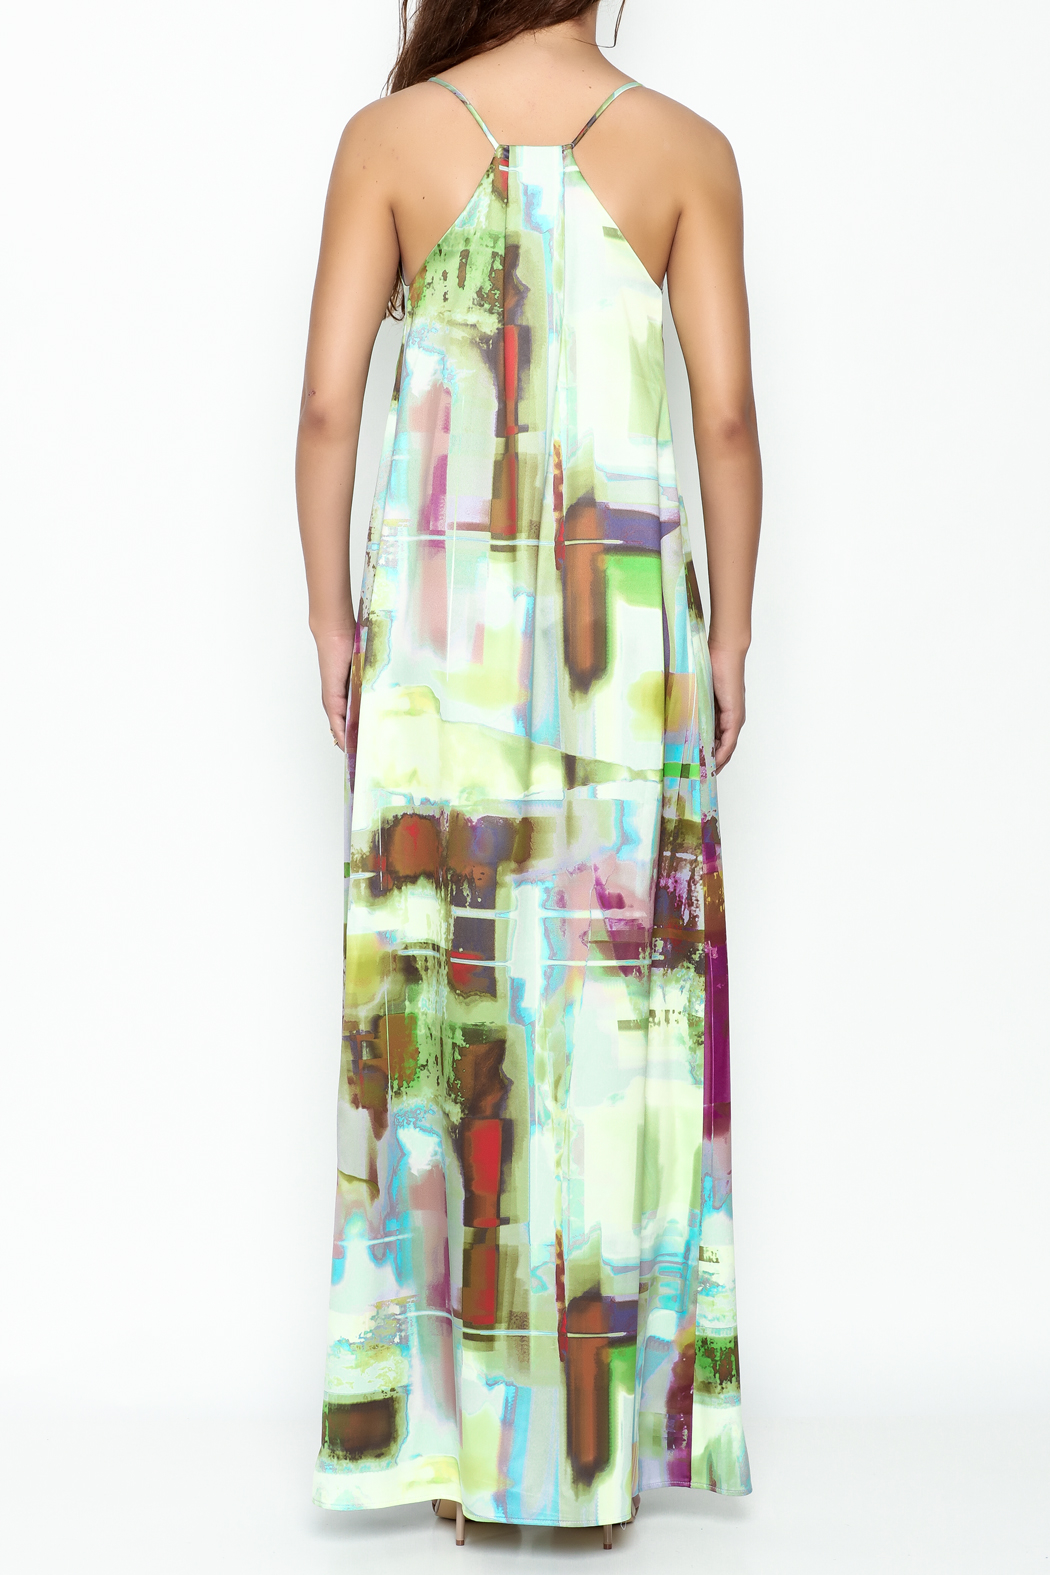 Nicole Miller Watercolor Print Maxi Dress - Back Cropped Image